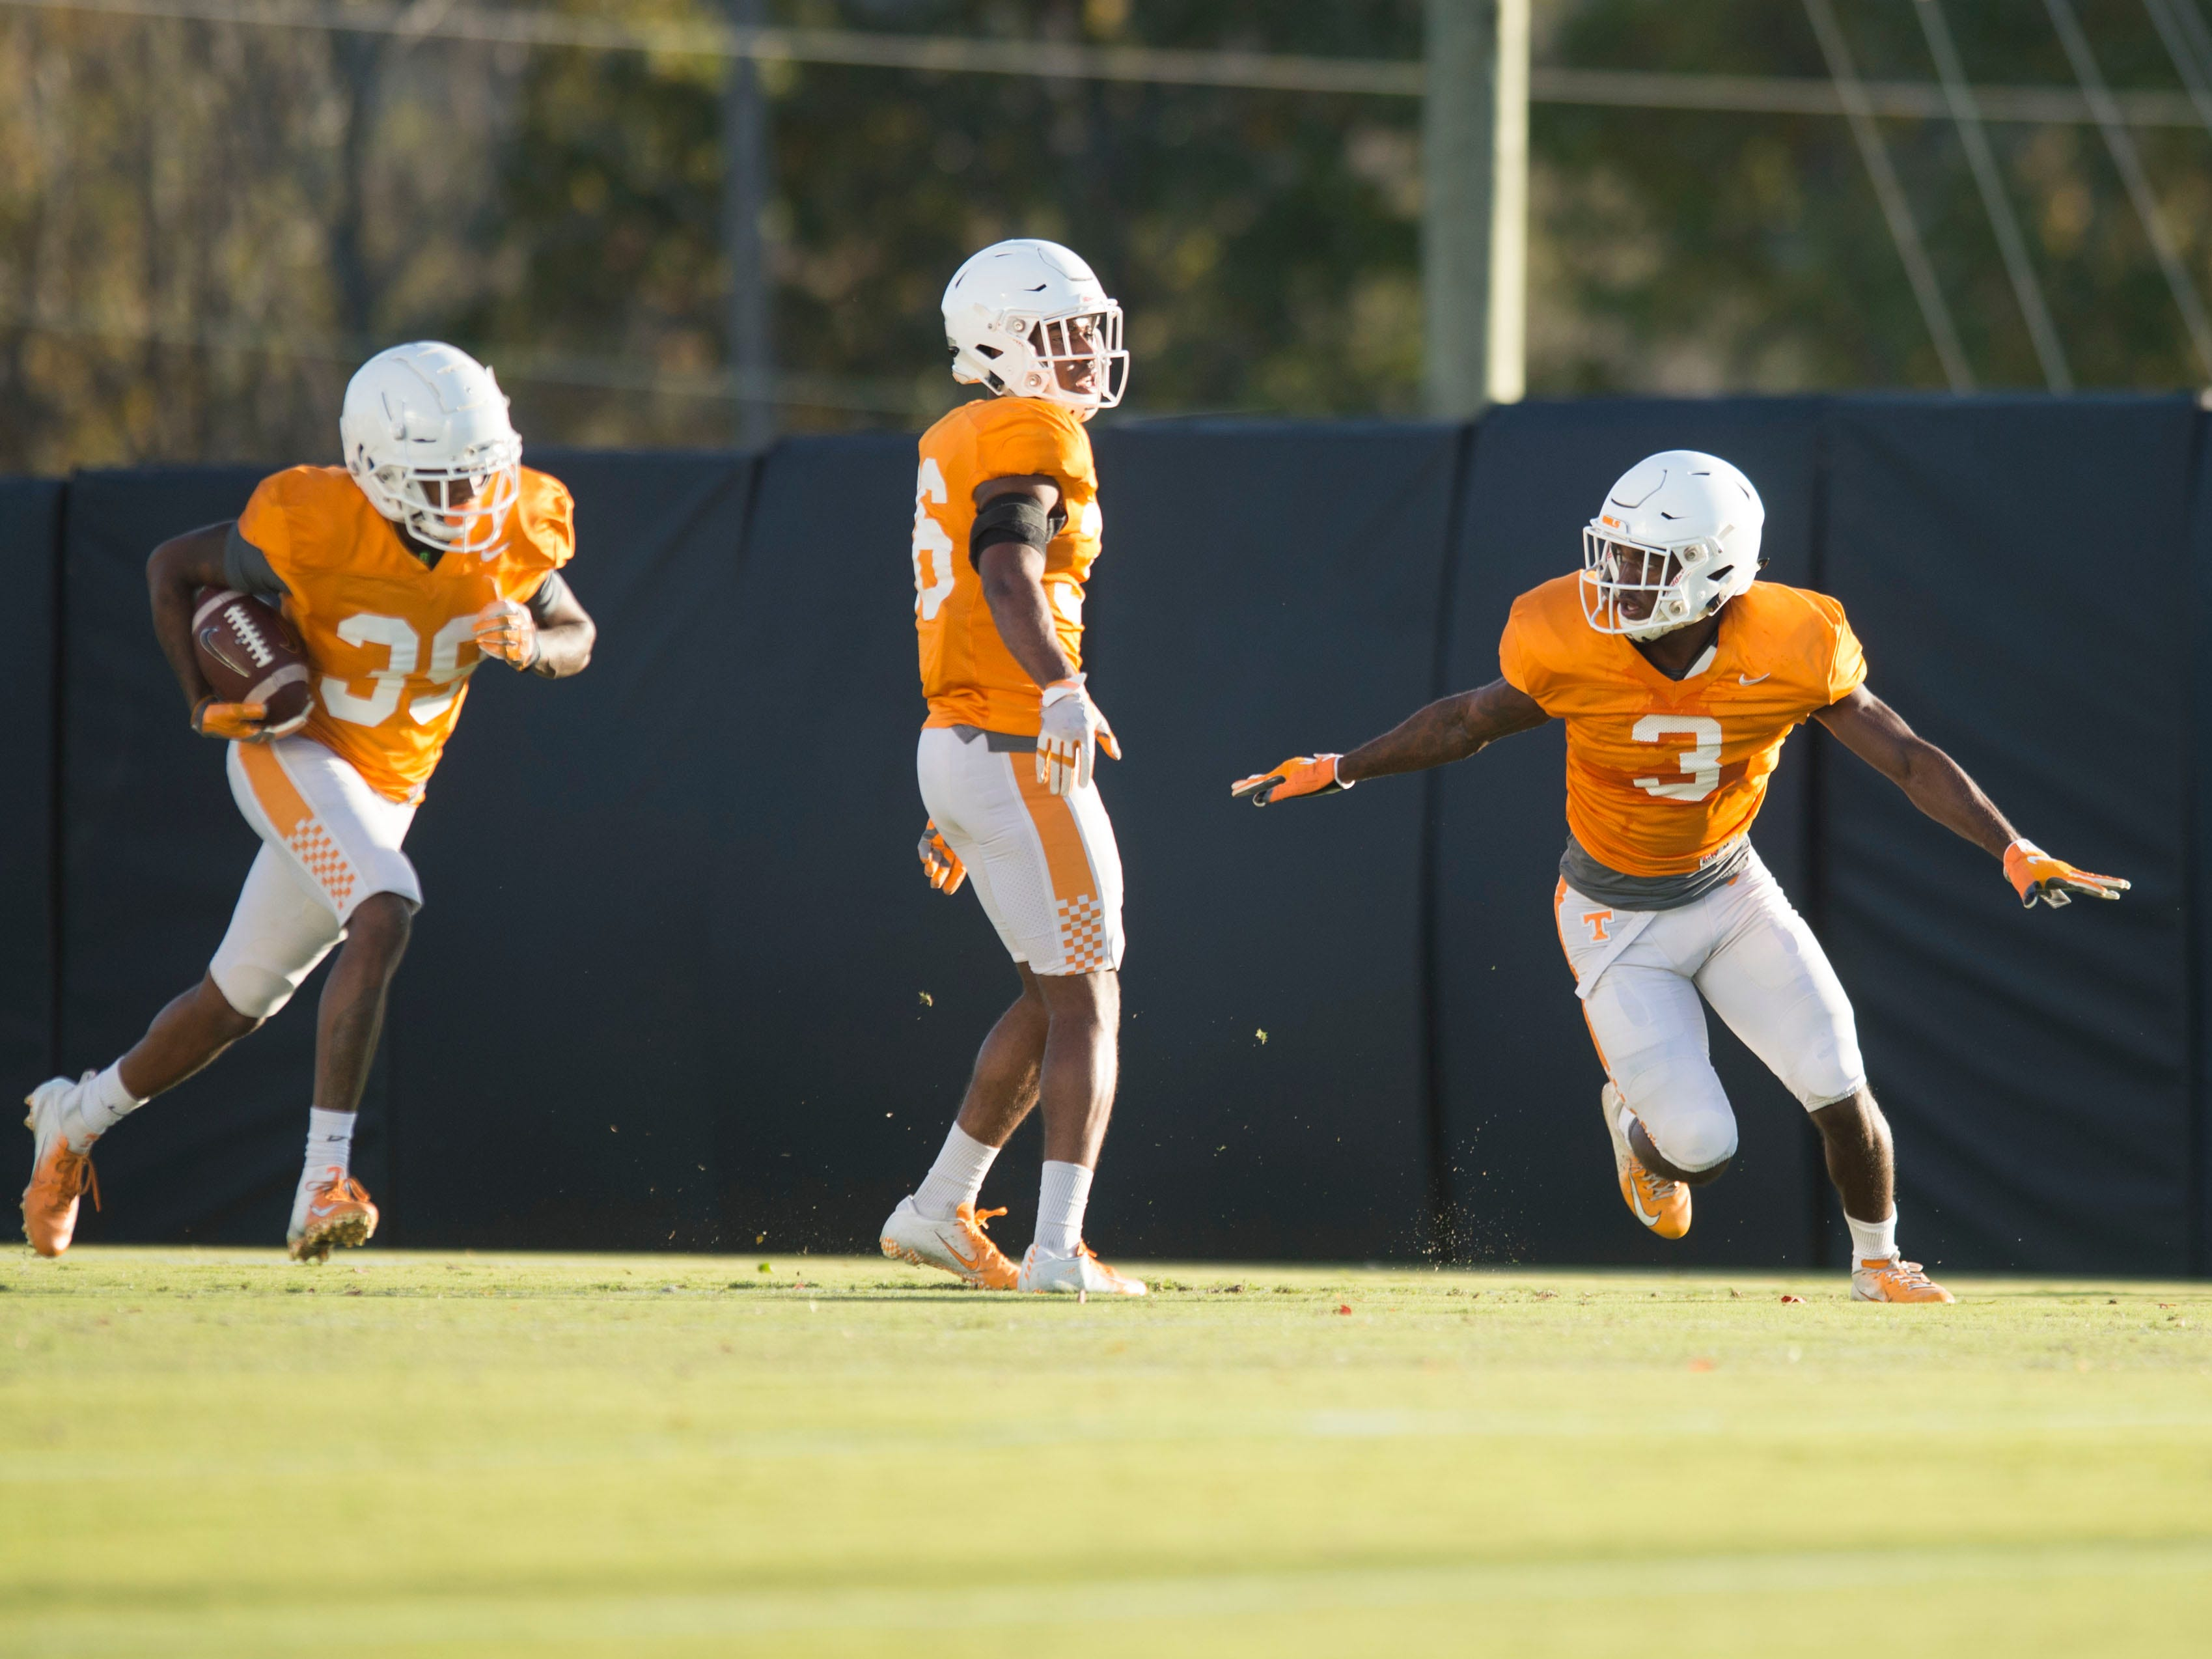 Tennessee defensive backs D.J. Henderson (39), Terrell Bailey (36), and Marquill Osborne (3) at football practice on Tuesday, November 6, 2018.